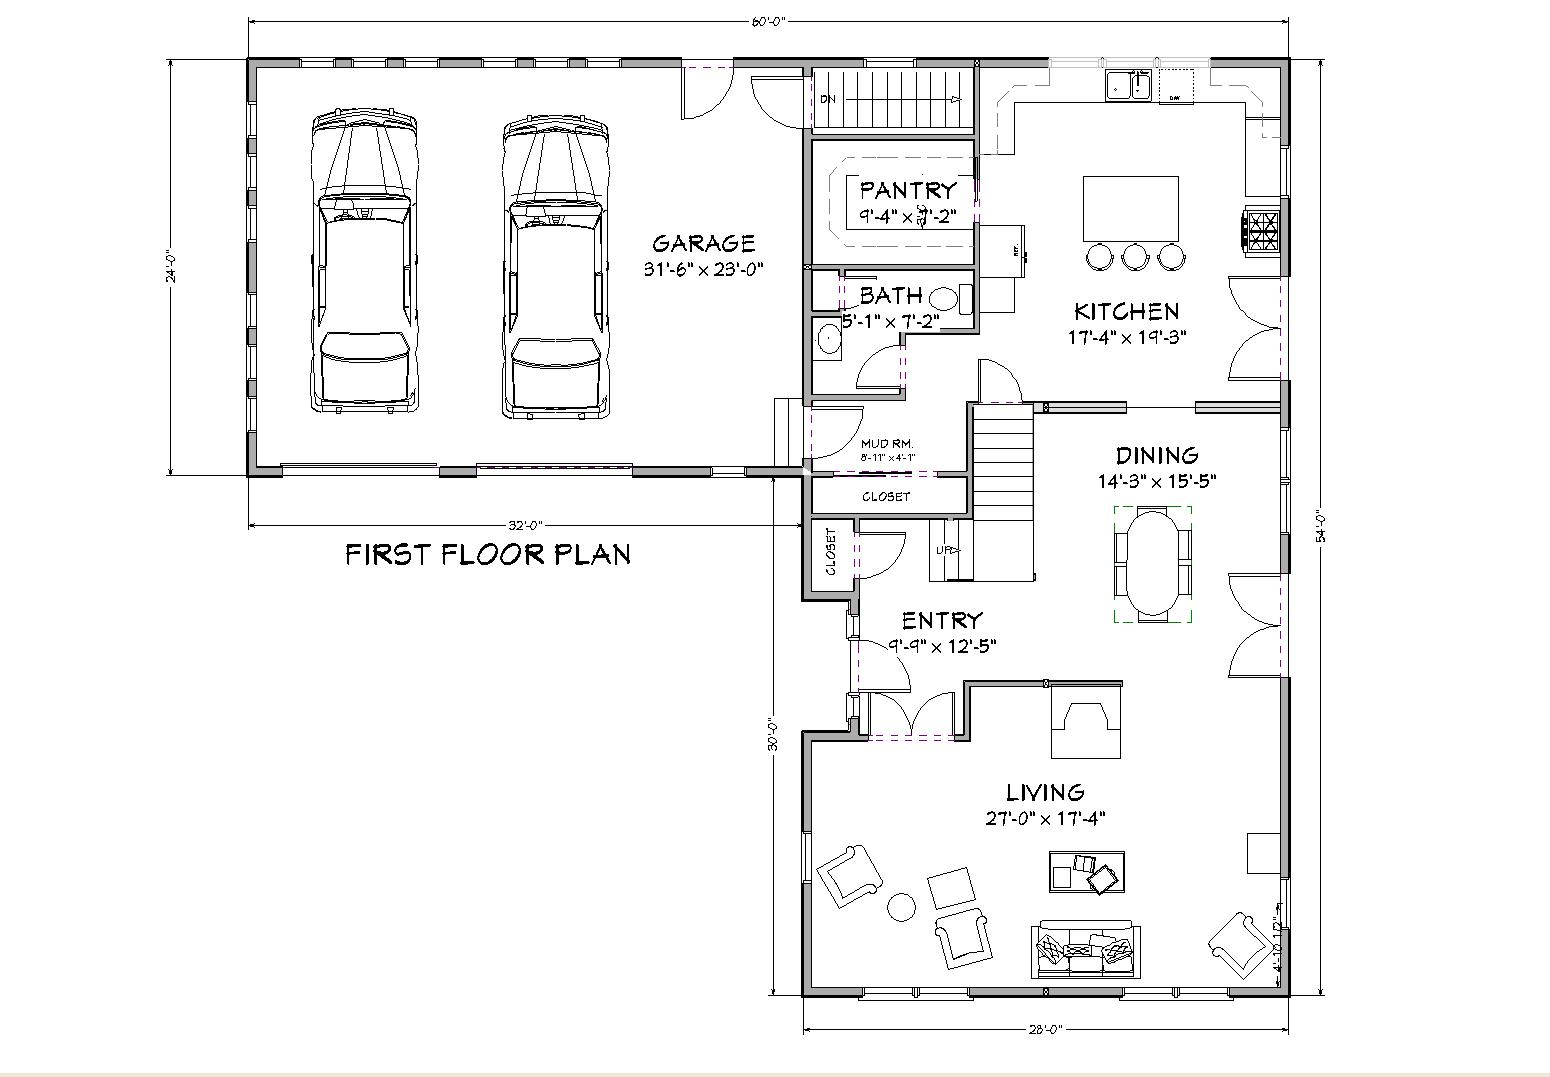 134474738849876228 also 500 Sf Small House likewise 500040364853932722 as well 200 Sq Ft Studio Apartment Layout Ideas Gudgar   Imanada In 81 Astounding Efficiency Apartment Floor Plans moreover FloorPlans. on 400 ft studio plans